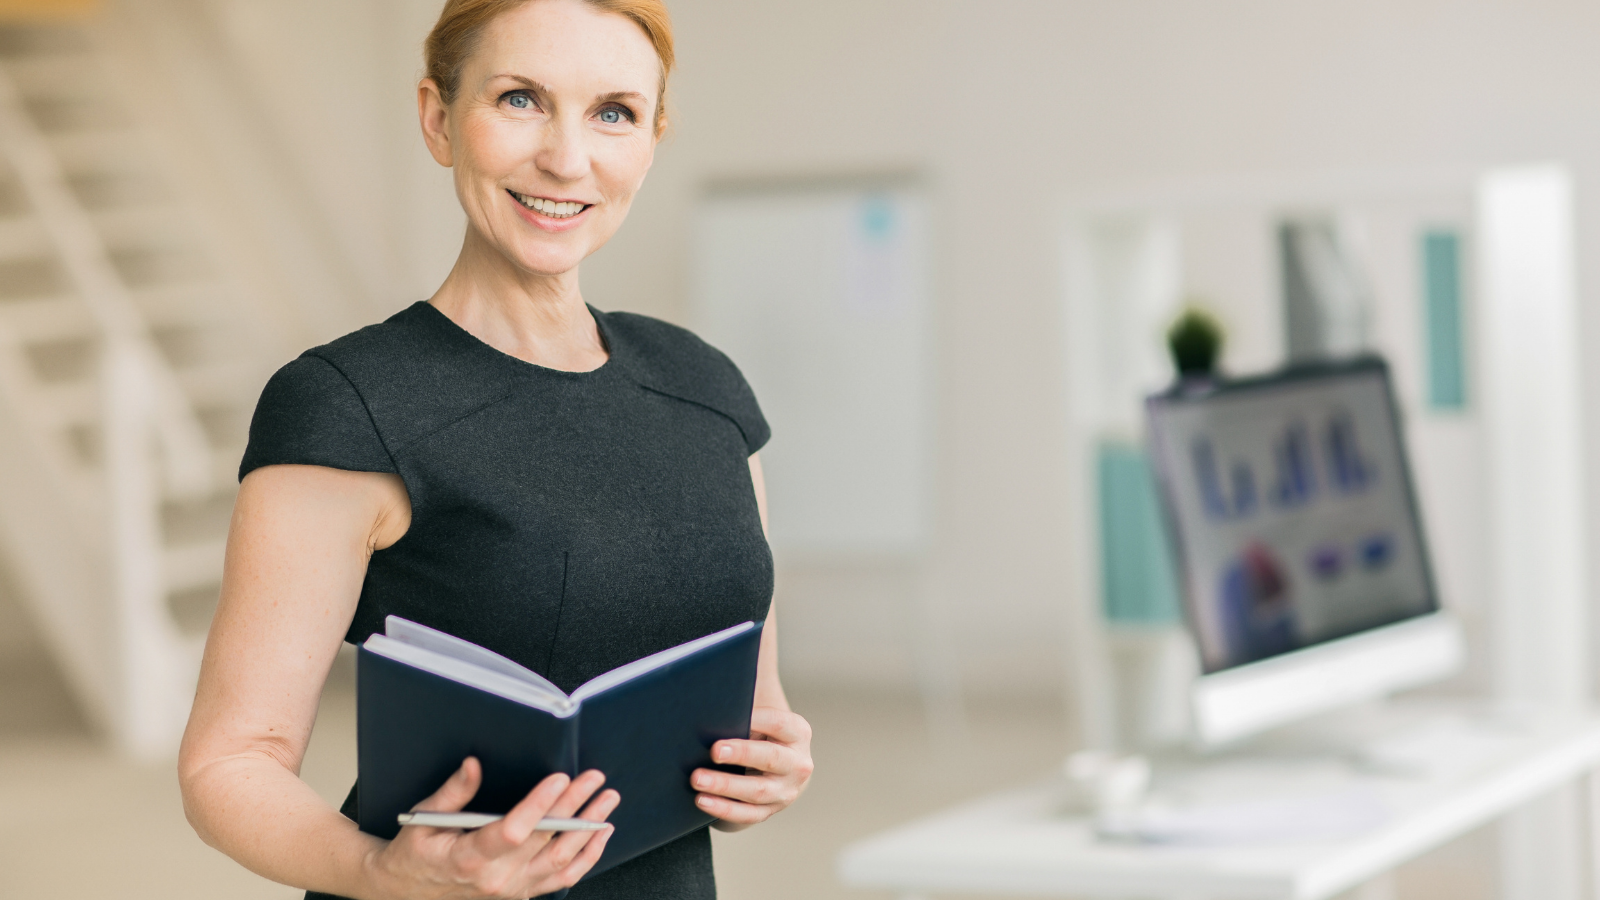 Work With the Content Expert